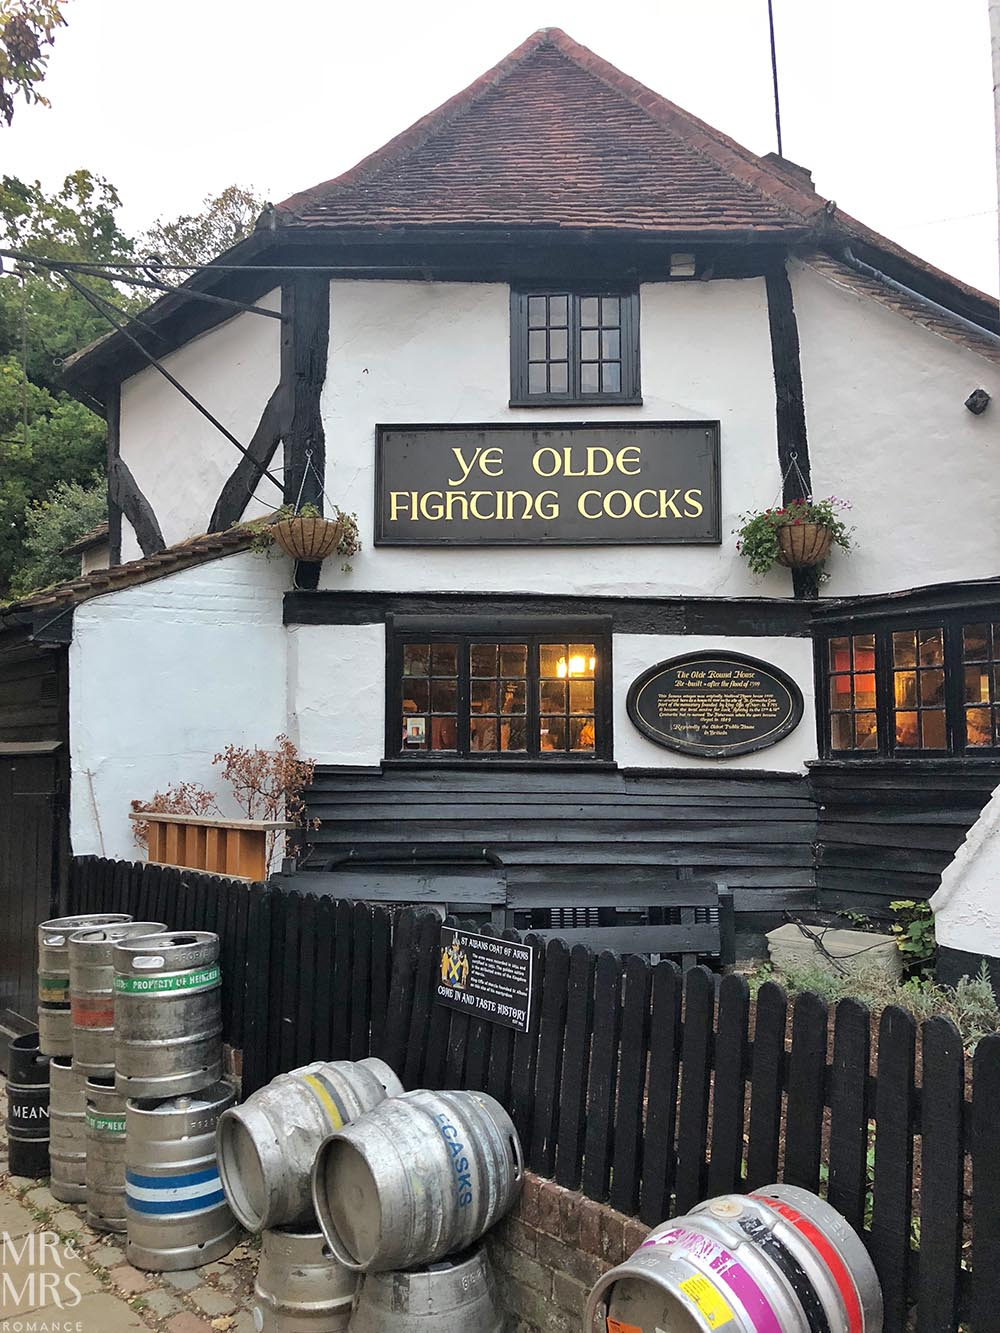 Ye Olde Fighting Cocks St Albans - Oldest pub in Britain